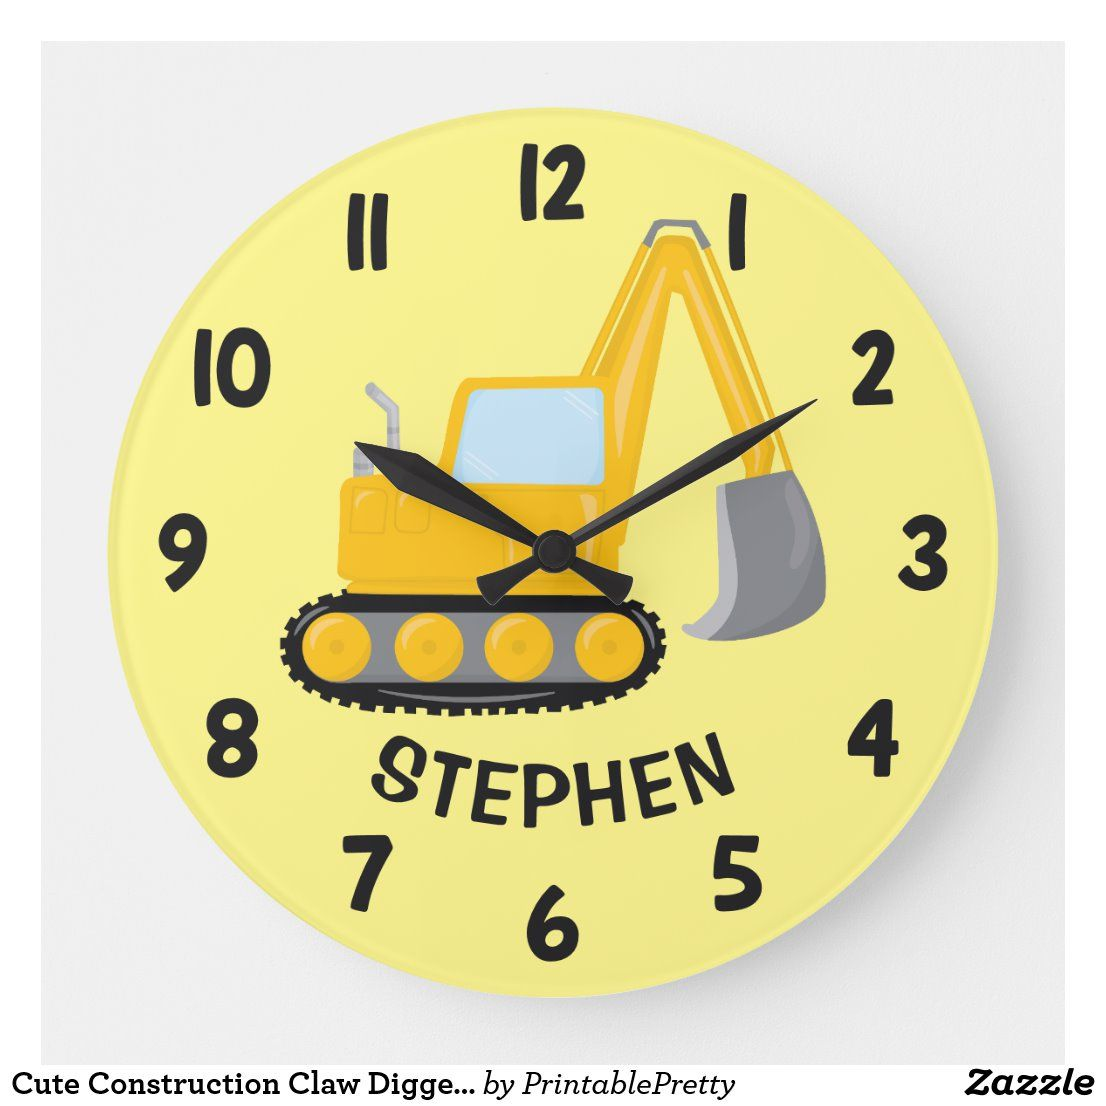 Cute Construction Claw Digger Boys Bedroom Wall Large Clock Zazzle Com In 2020 Large Clock Clock Boy S Bedroom